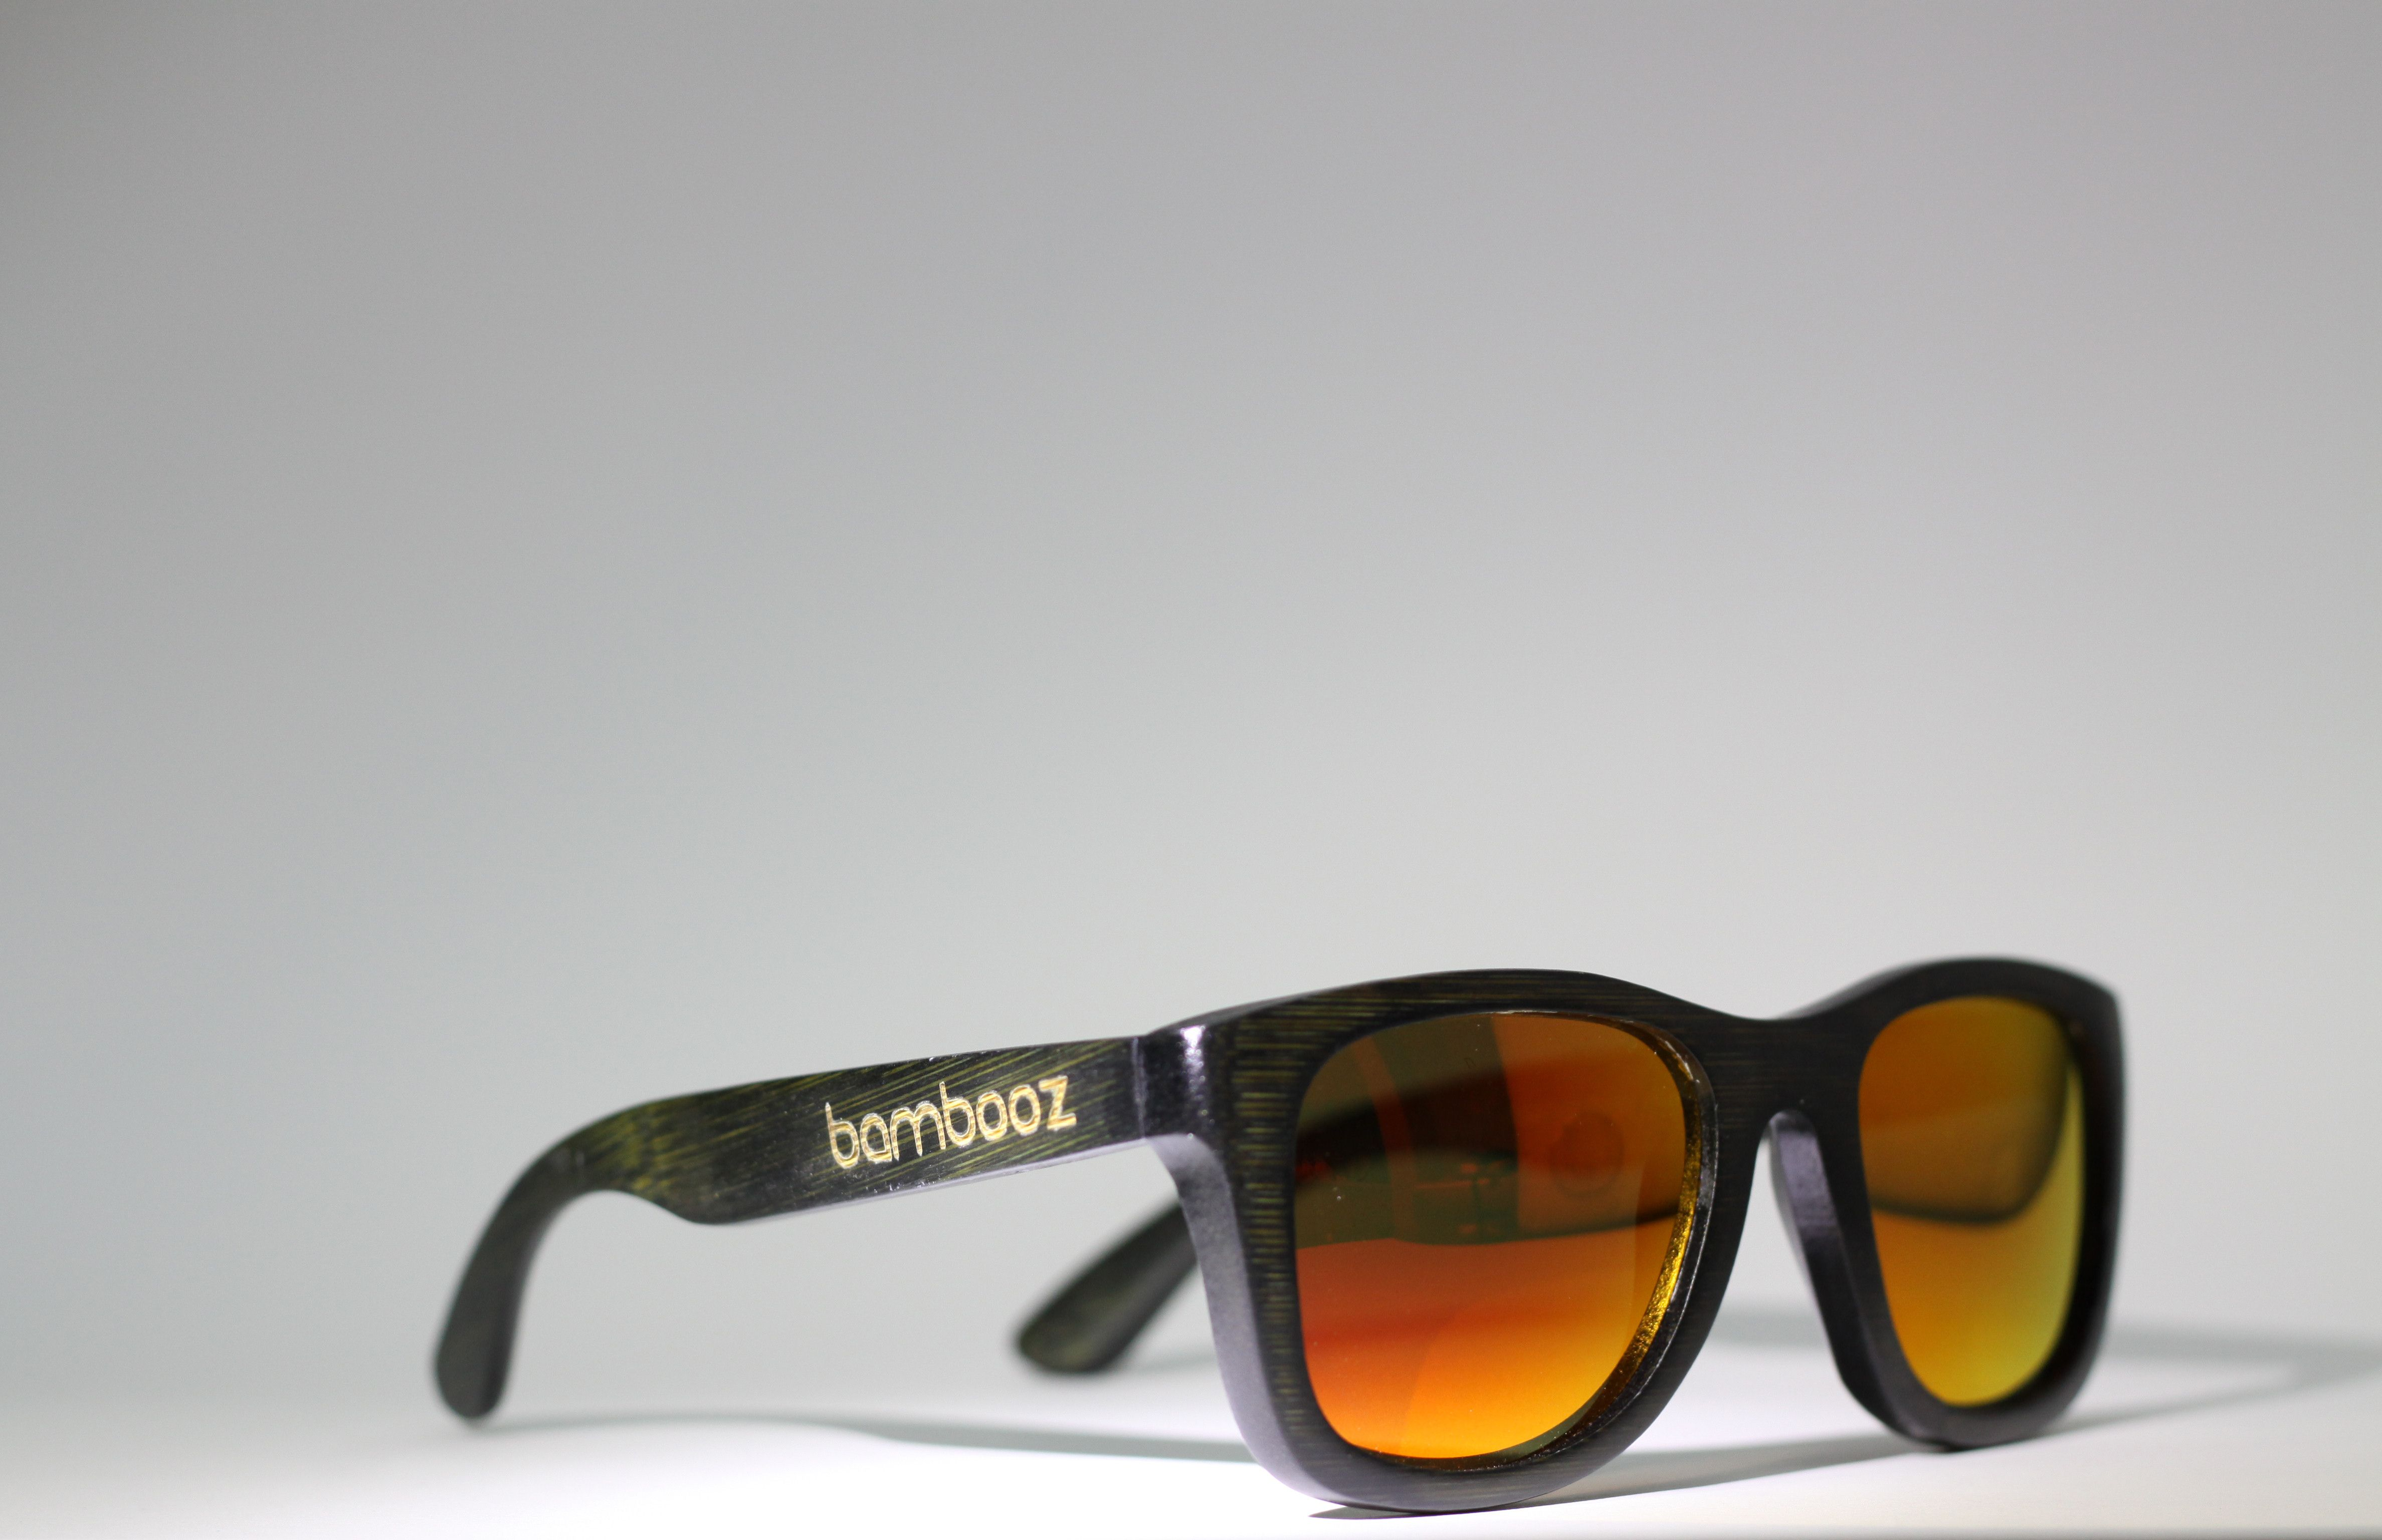 $130 - The other Brooklyn colourway - Black Mamba! As fierce and edgy as the creature it's named after